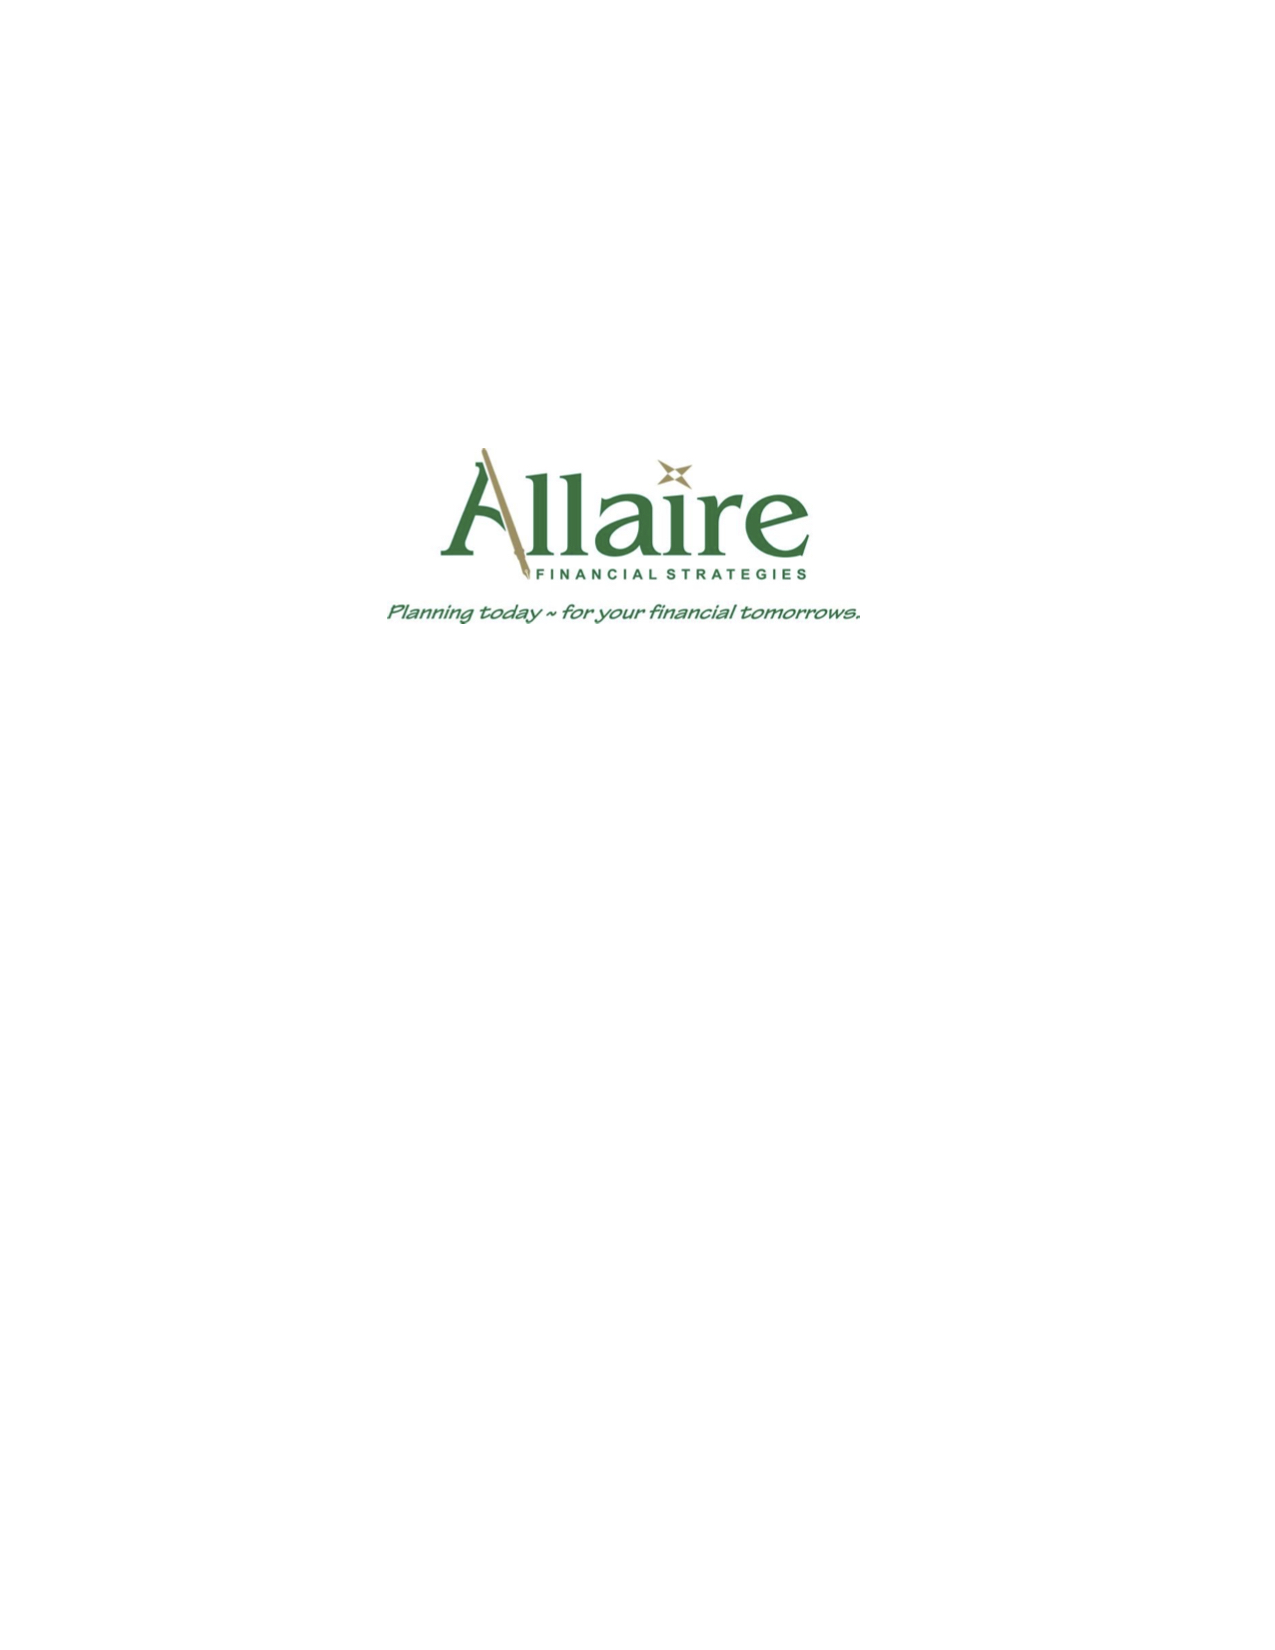 Allaire Financial Strategies